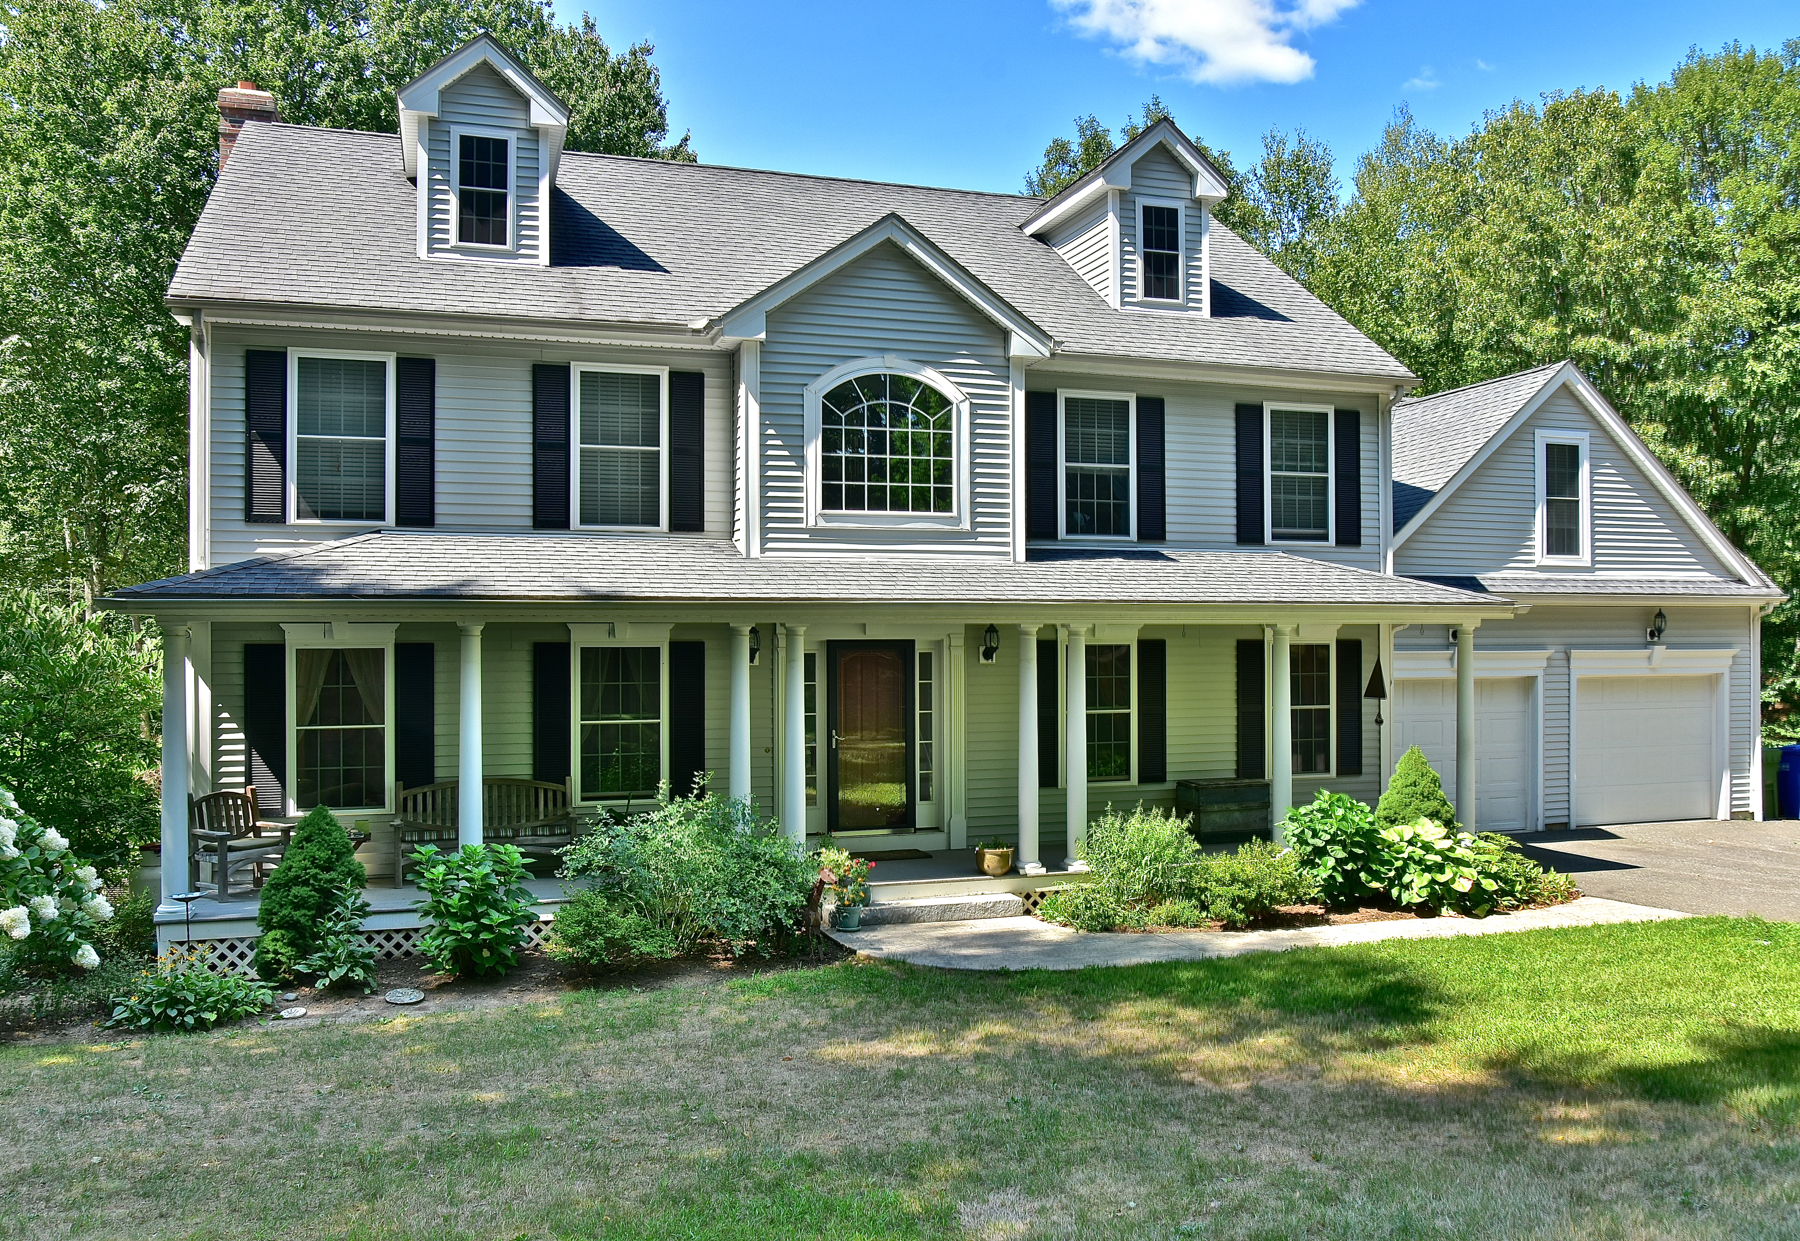 Moradia para Venda às Well Maintained Waterfront Home 117 Falls Landing Rd Deep River, Connecticut, 06417 Estados Unidos